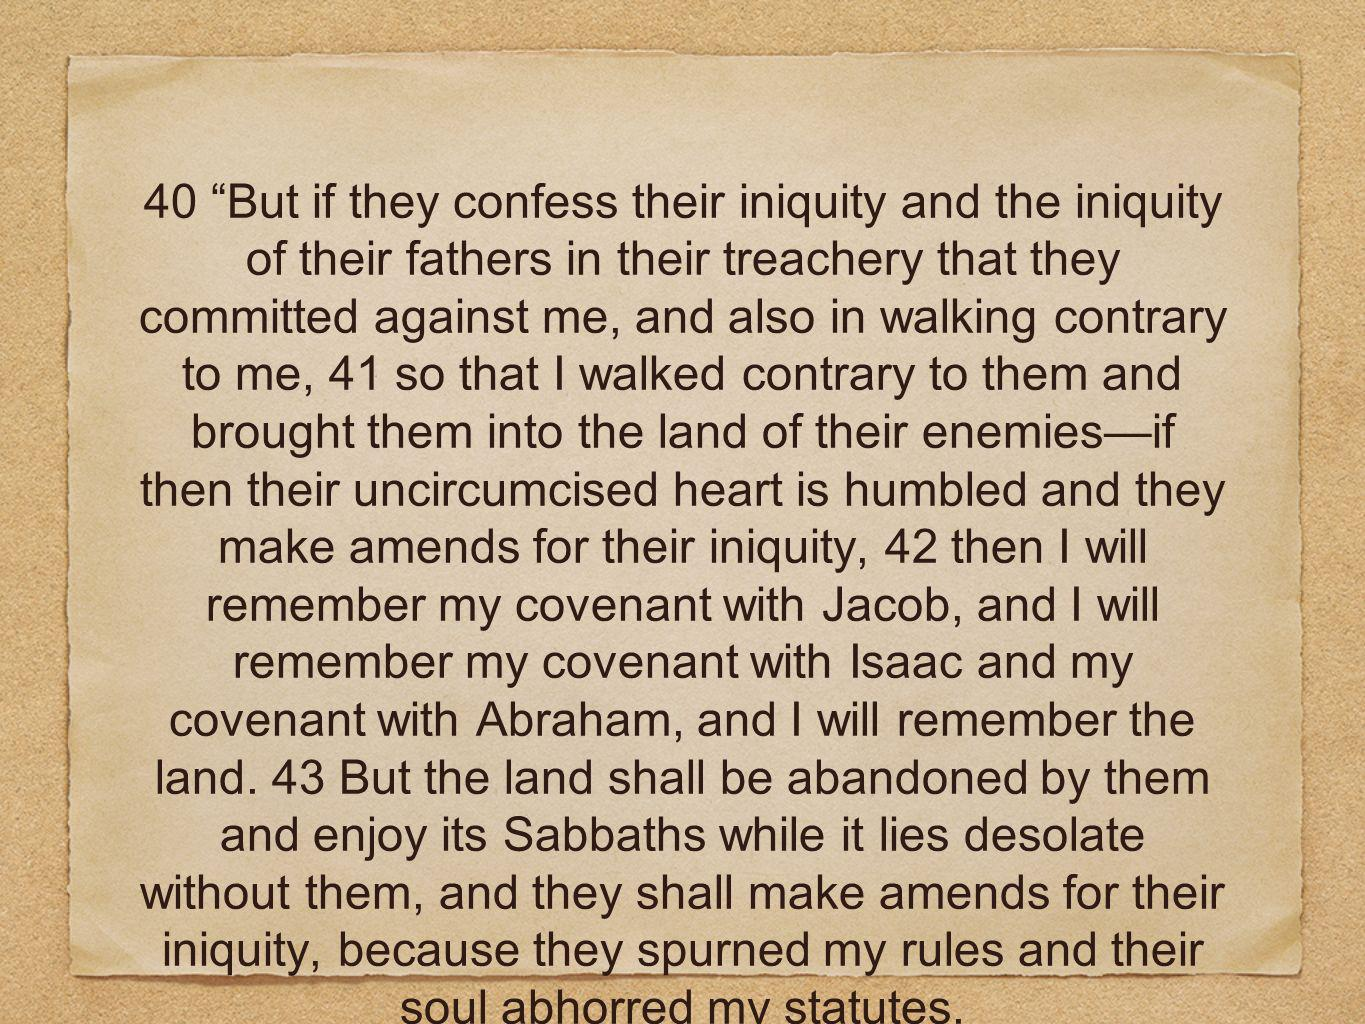 40 But if they confess their iniquity and the iniquity of their fathers in their treachery that they committed against me, and also in walking contrary to me, 41 so that I walked contrary to them and brought them into the land of their enemies—if then their uncircumcised heart is humbled and they make amends for their iniquity, 42 then I will remember my covenant with Jacob, and I will remember my covenant with Isaac and my covenant with Abraham, and I will remember the land.